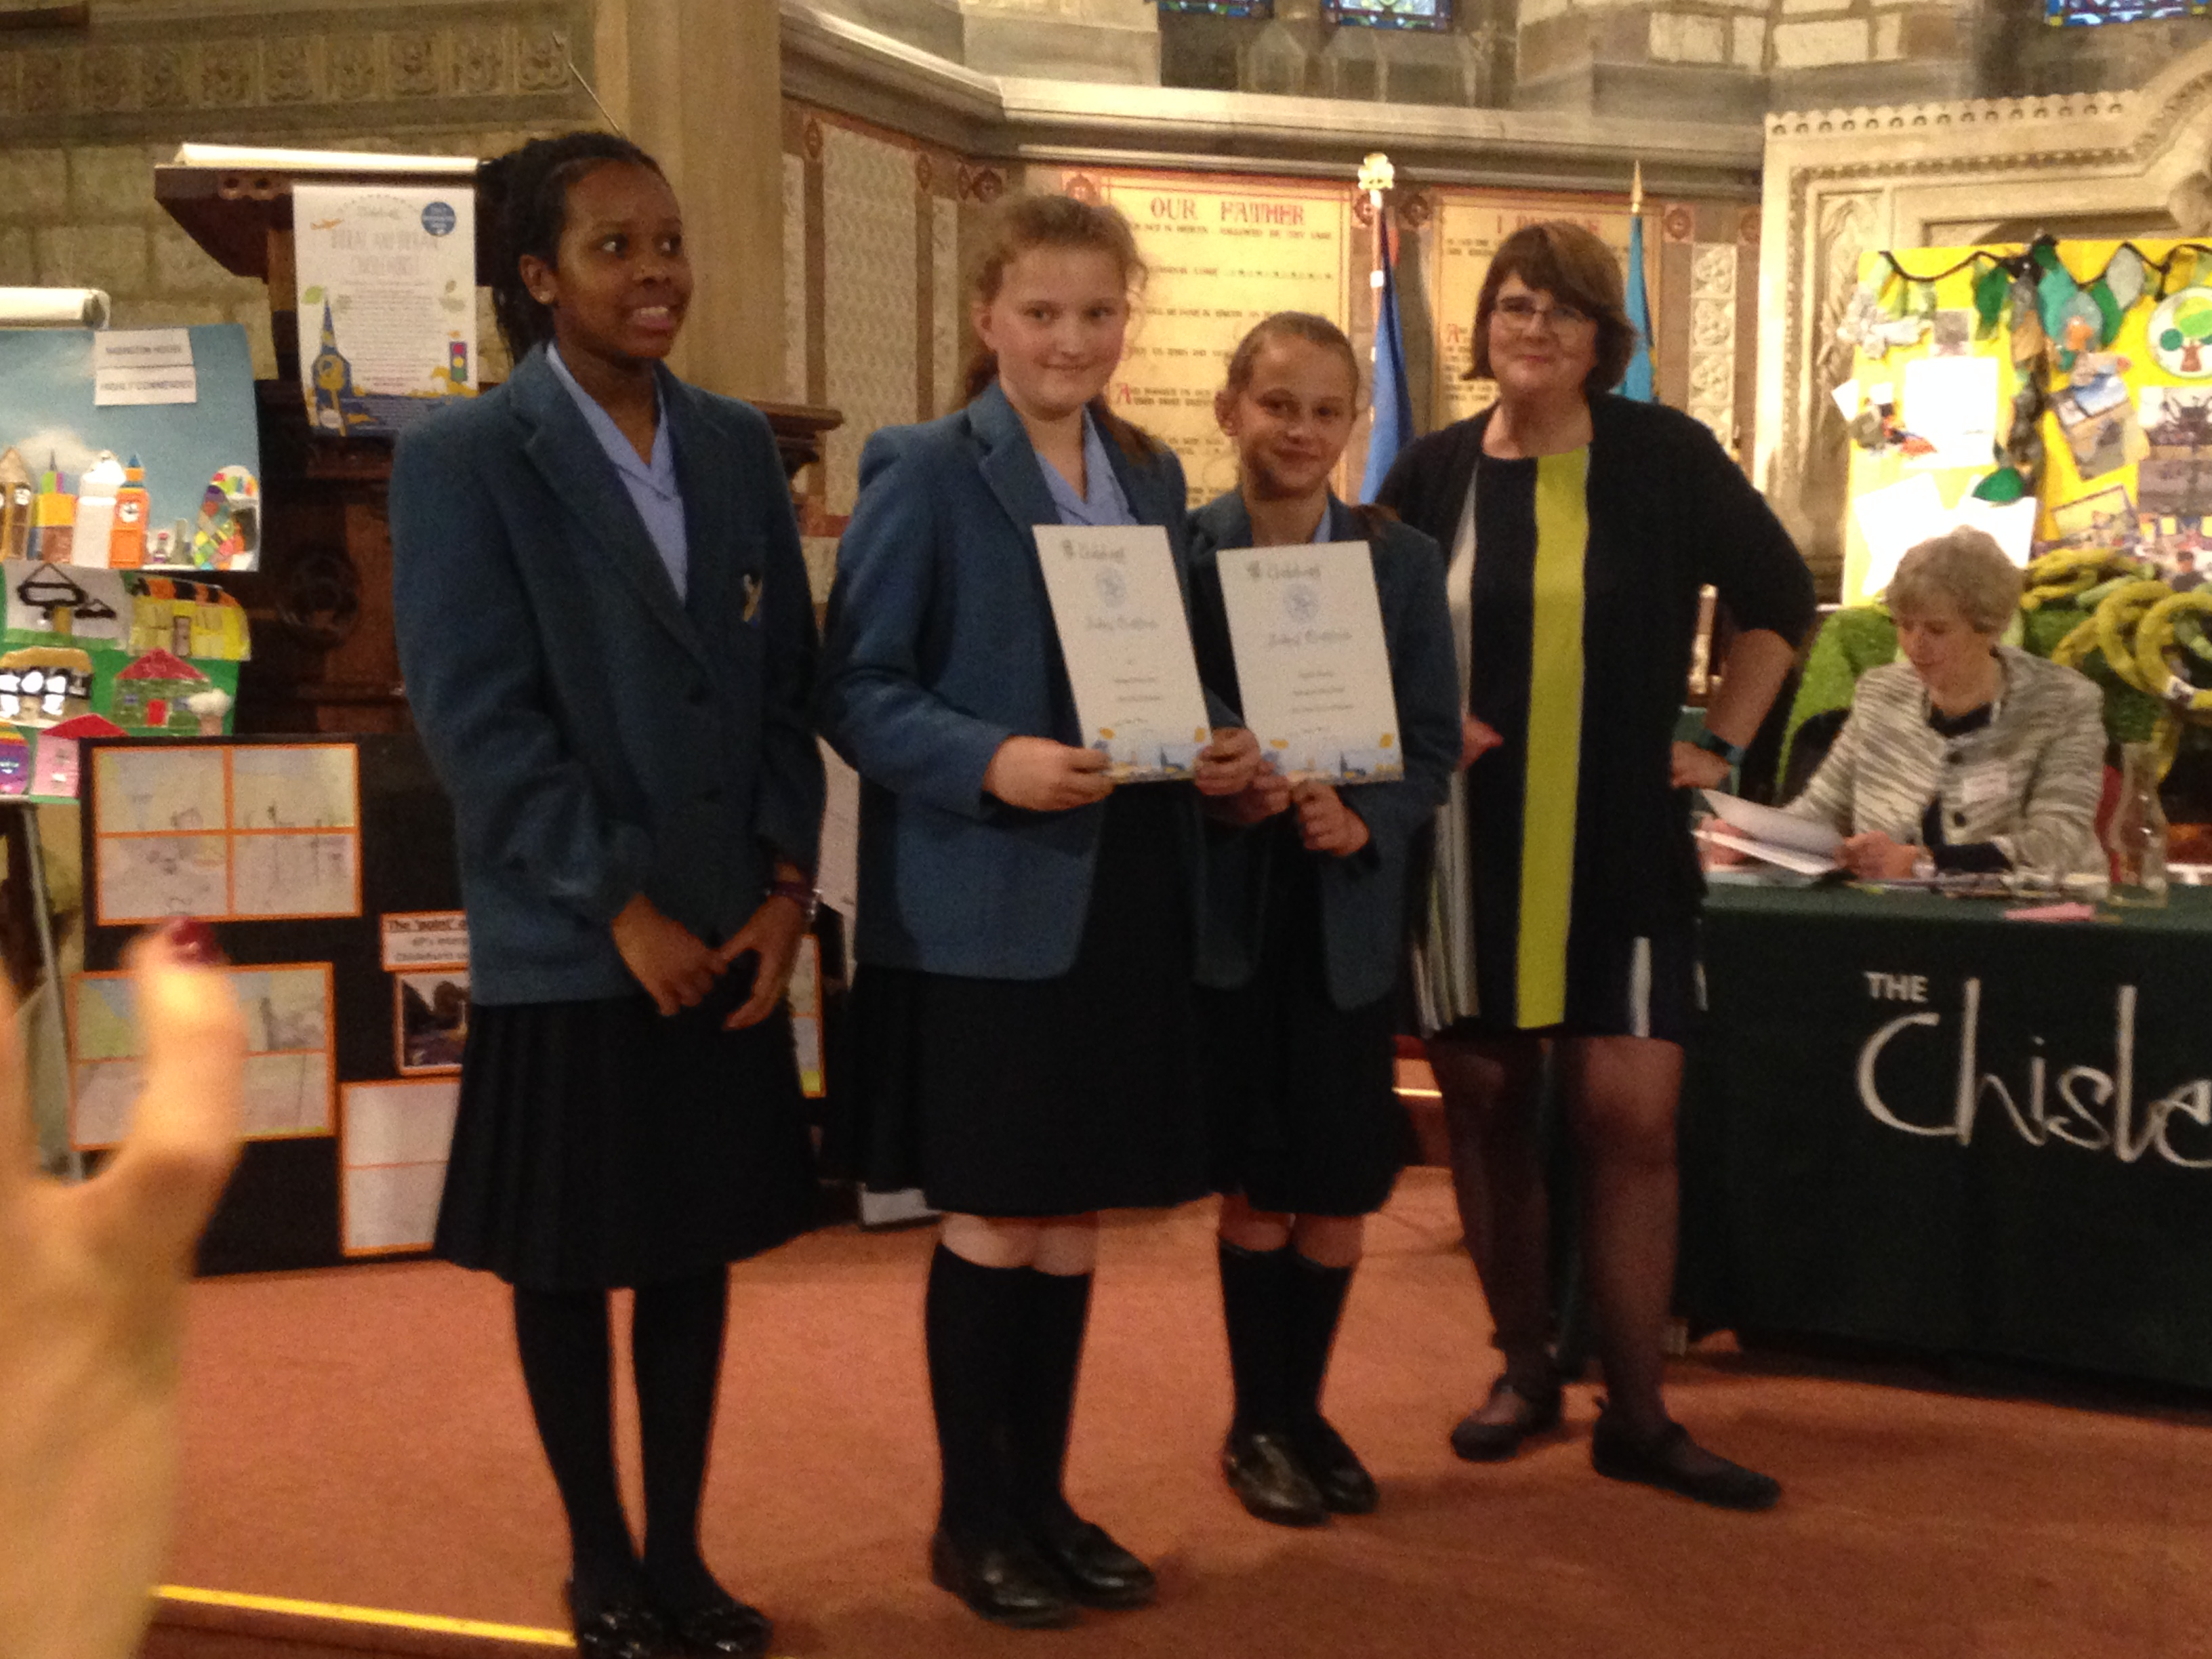 Prize Winners at the Chislehurst Environmental Awards